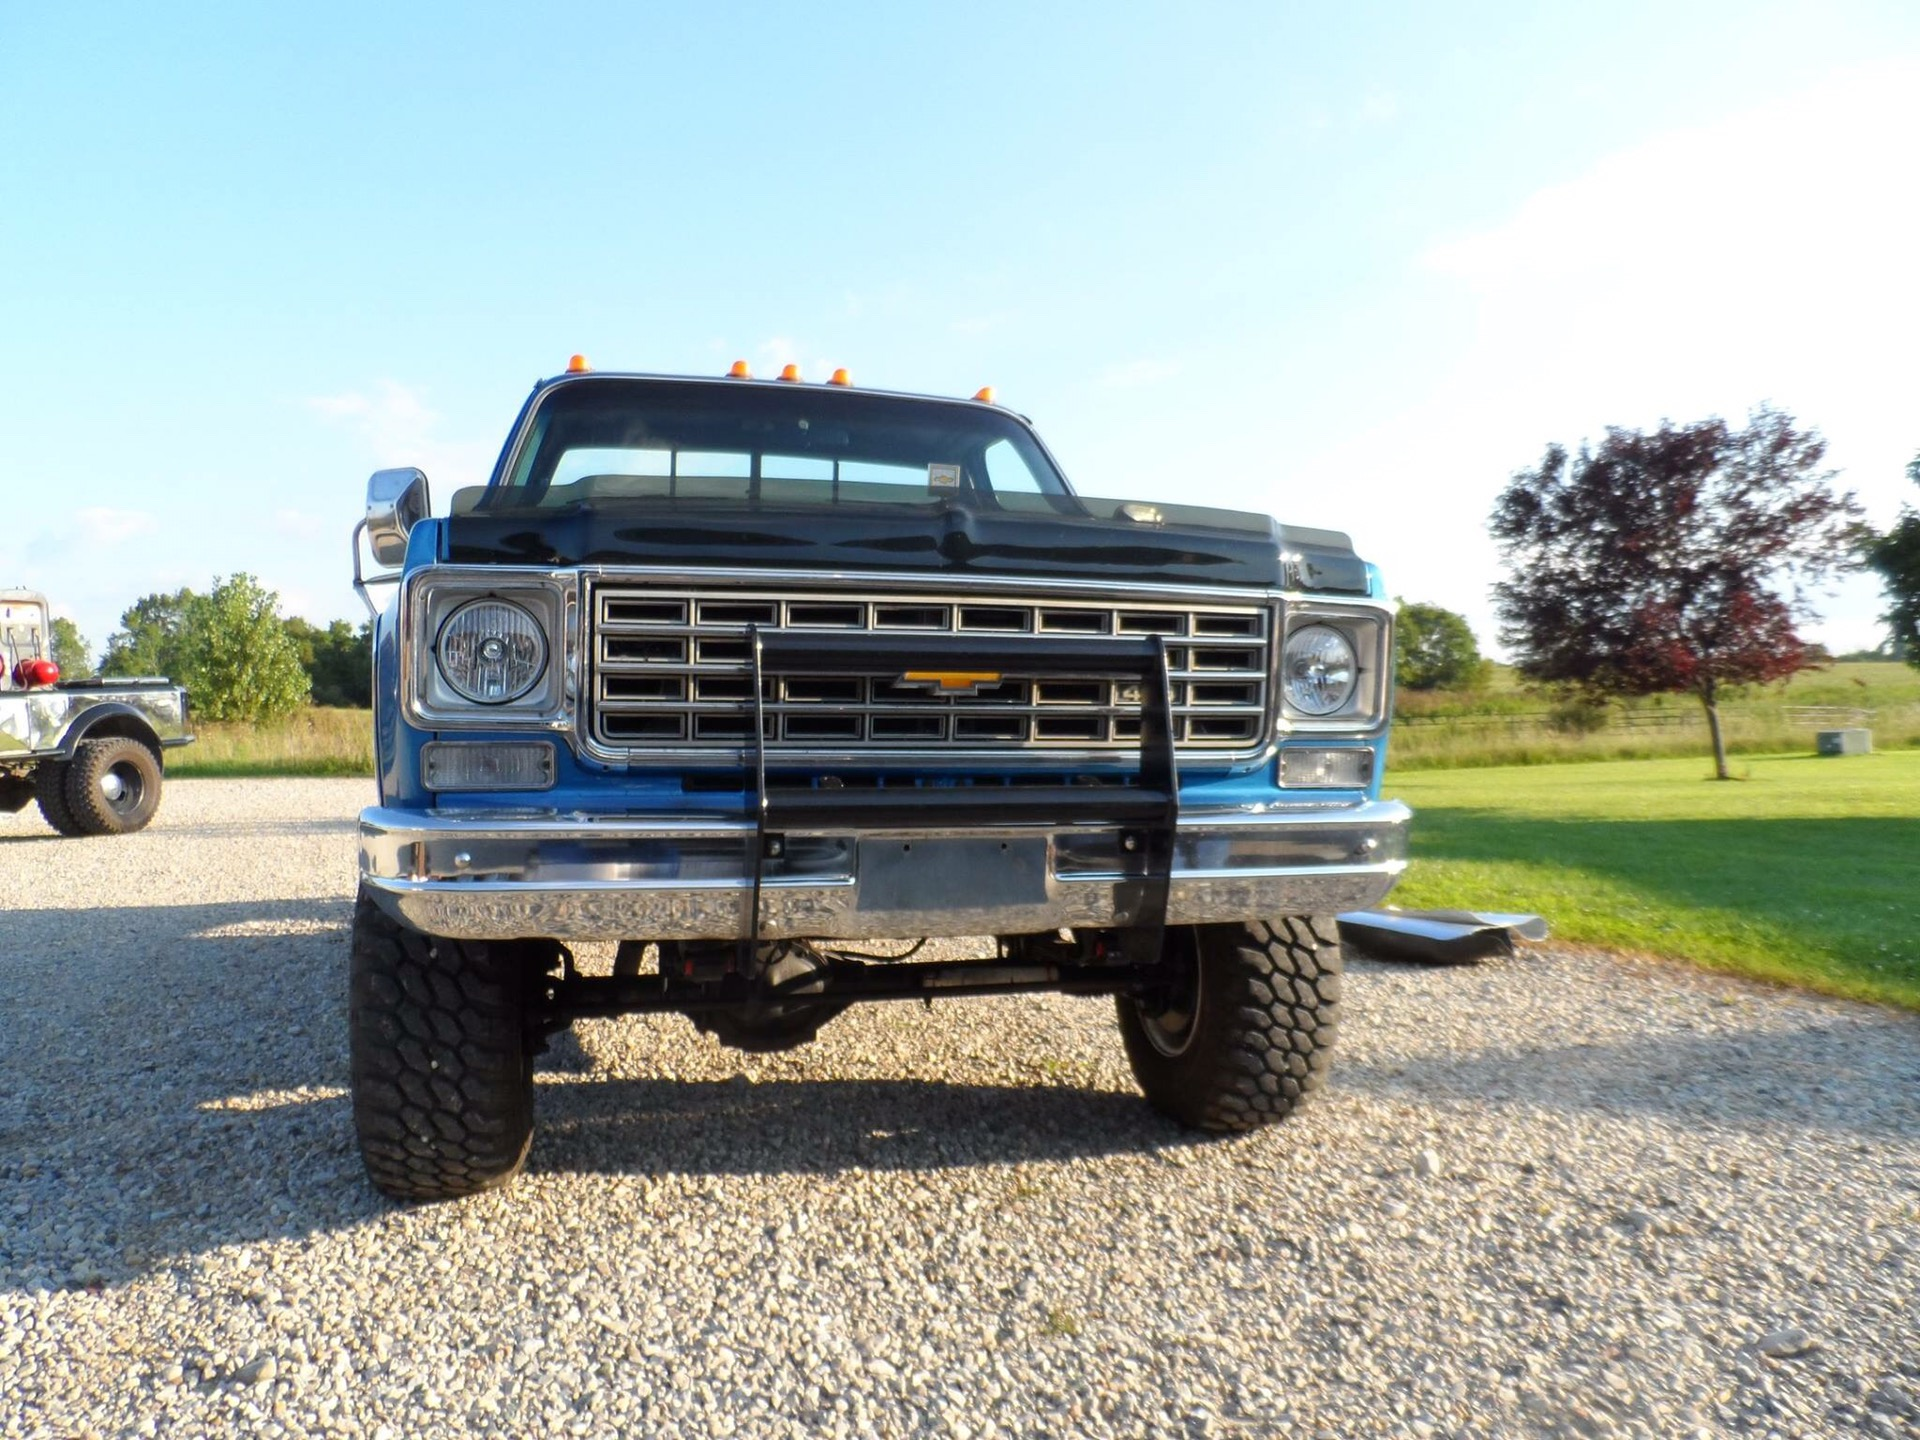 1976 Chevy Silverado Car Auto Trucks Fuel System He Had Bought For His Son Graduation And The Drove 3 4 Months Decided Did Not Want Truck Anymore Was Driven Very Little So